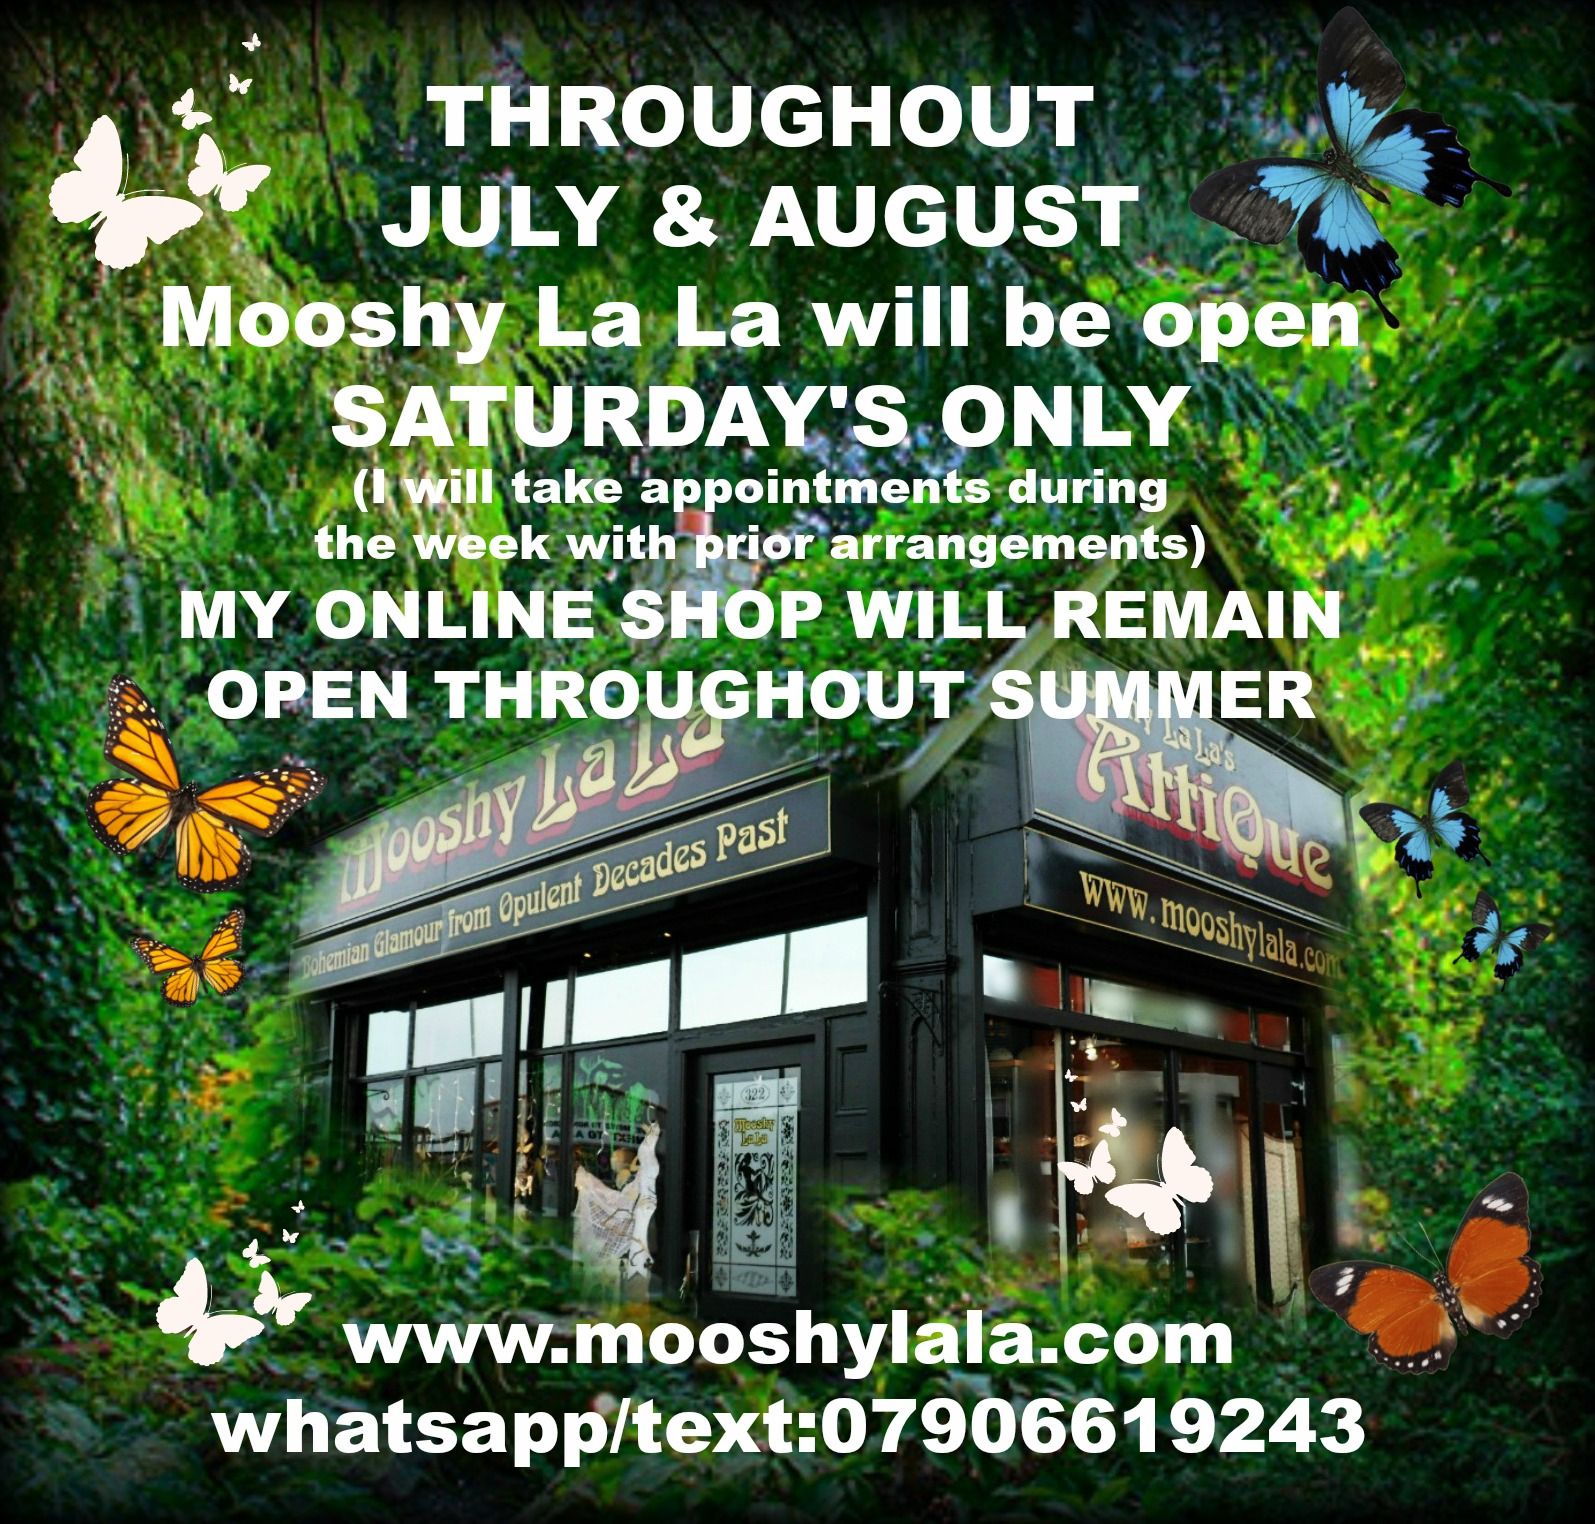 summer-hours-mooshy-la-la